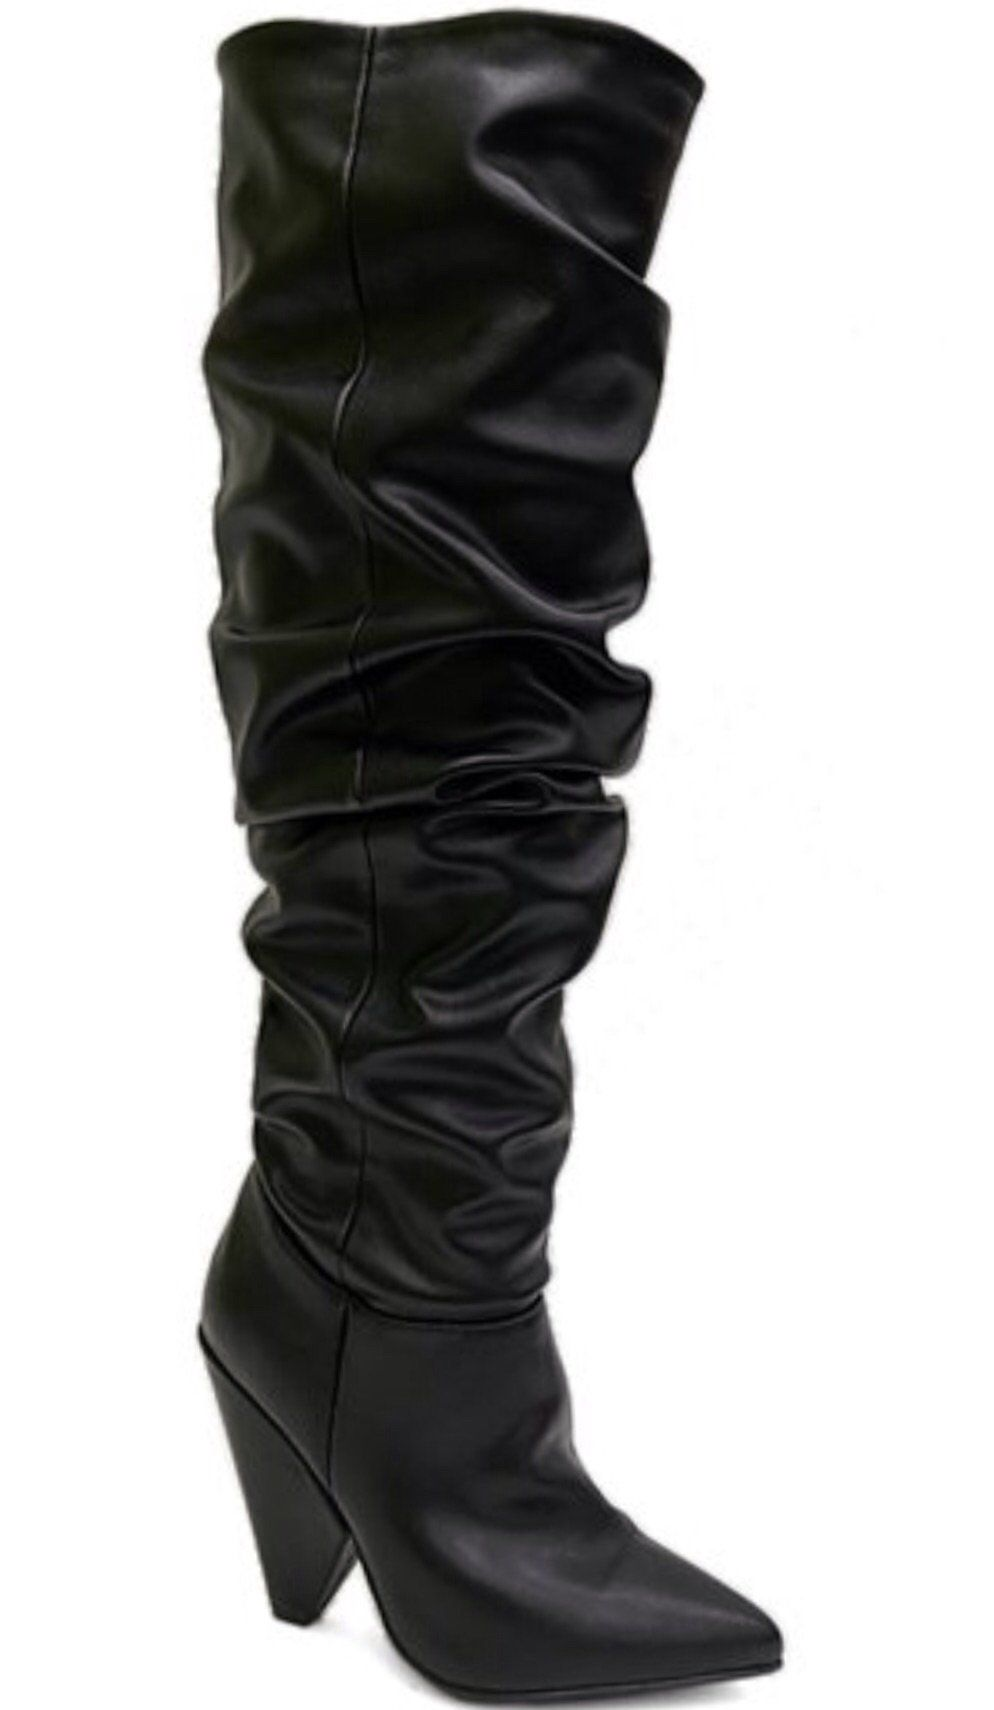 feba6980fa486 Black cone heel boot comfy and stylish, these tall boots are versatile and  can be worn with leggings or a dress.